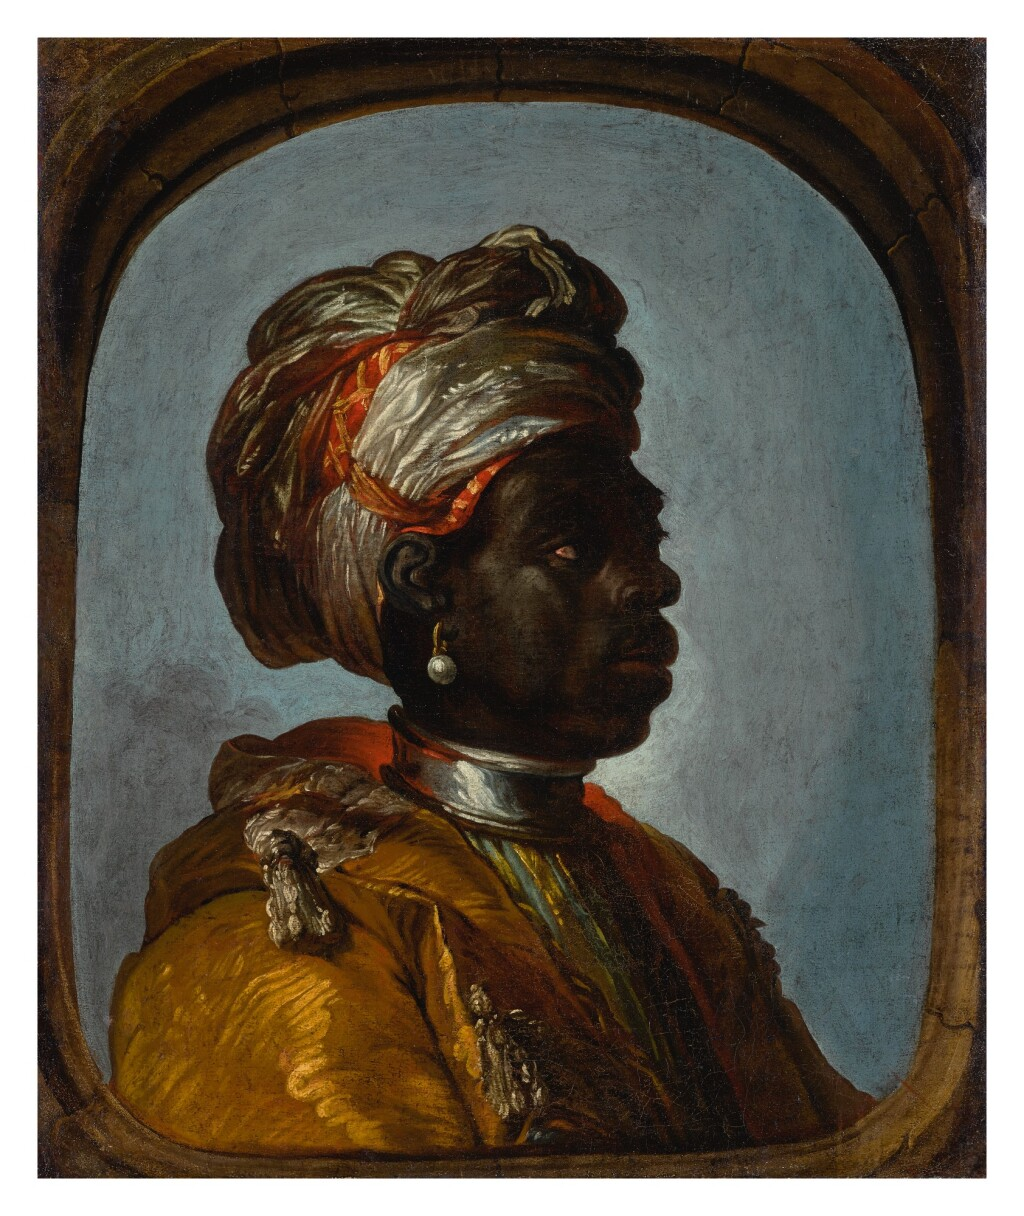 FRENCH SCHOOL, CIRCA 1700   PORTRAIT OF A PAGE IN PROFILE, WEARING A TURBAN